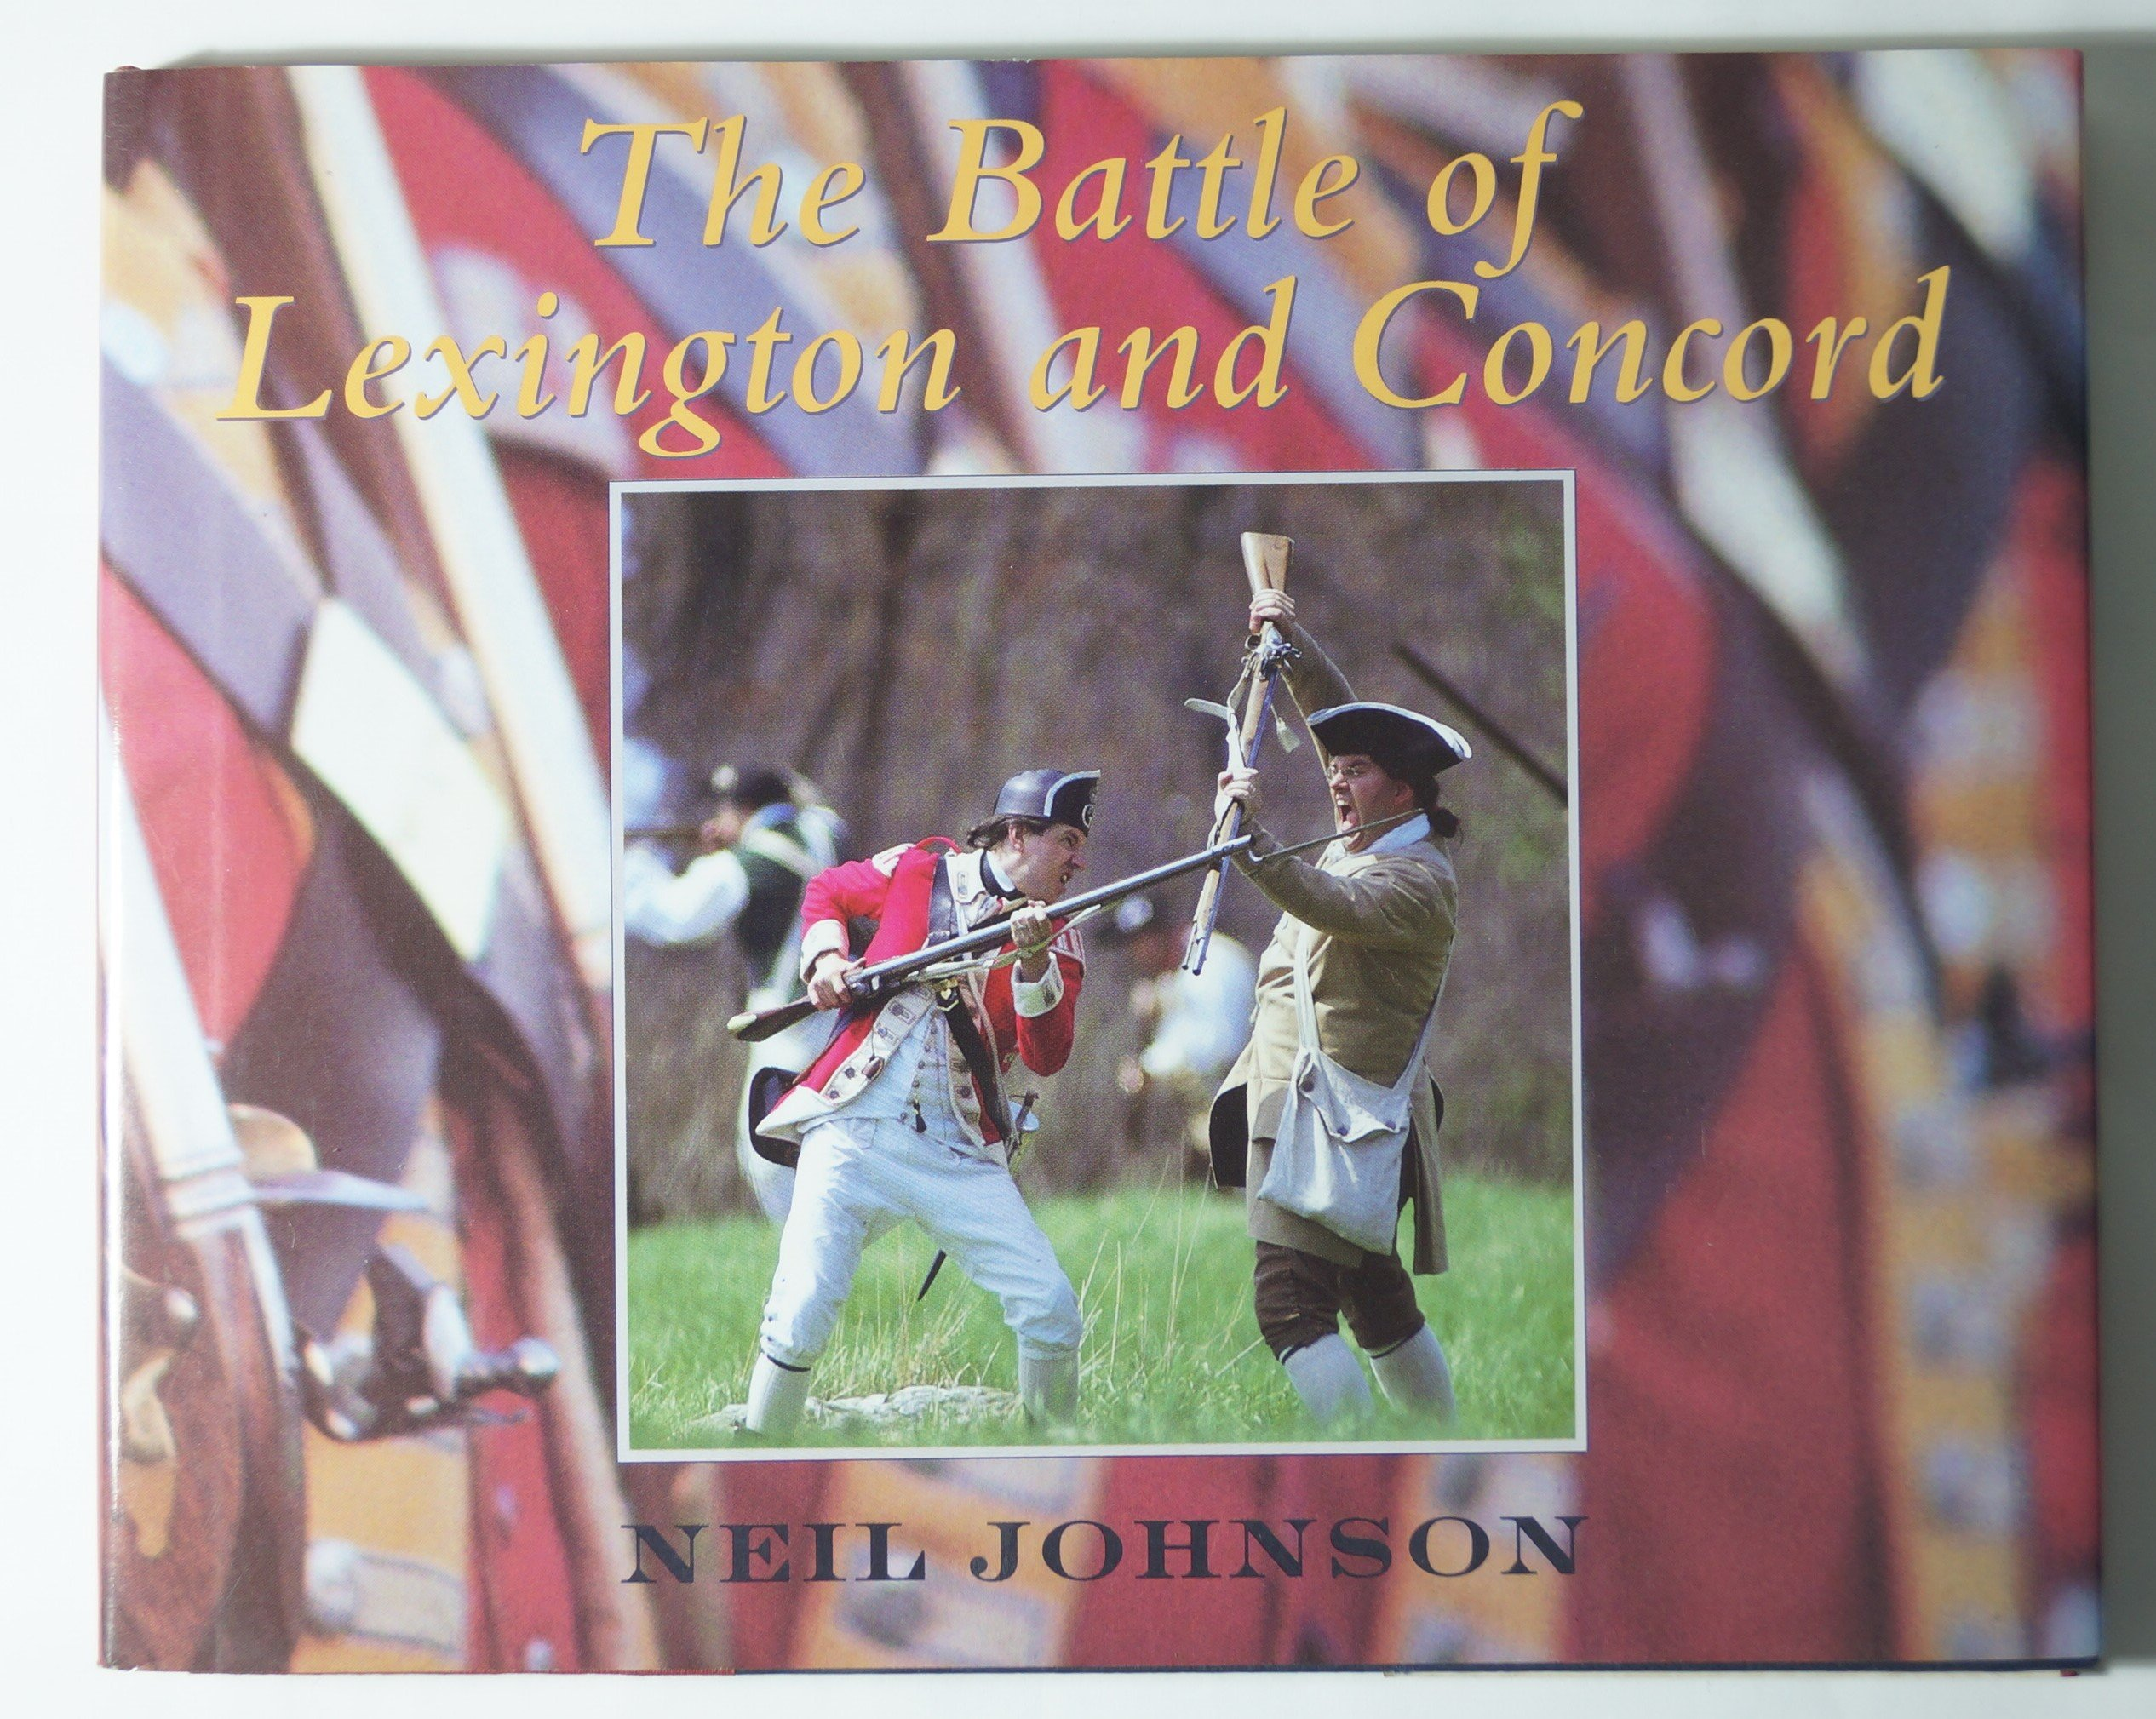 the battle of lexington and concord neil johnson 9780027478419 the battle of lexington and concord neil johnson 9780027478419 com books